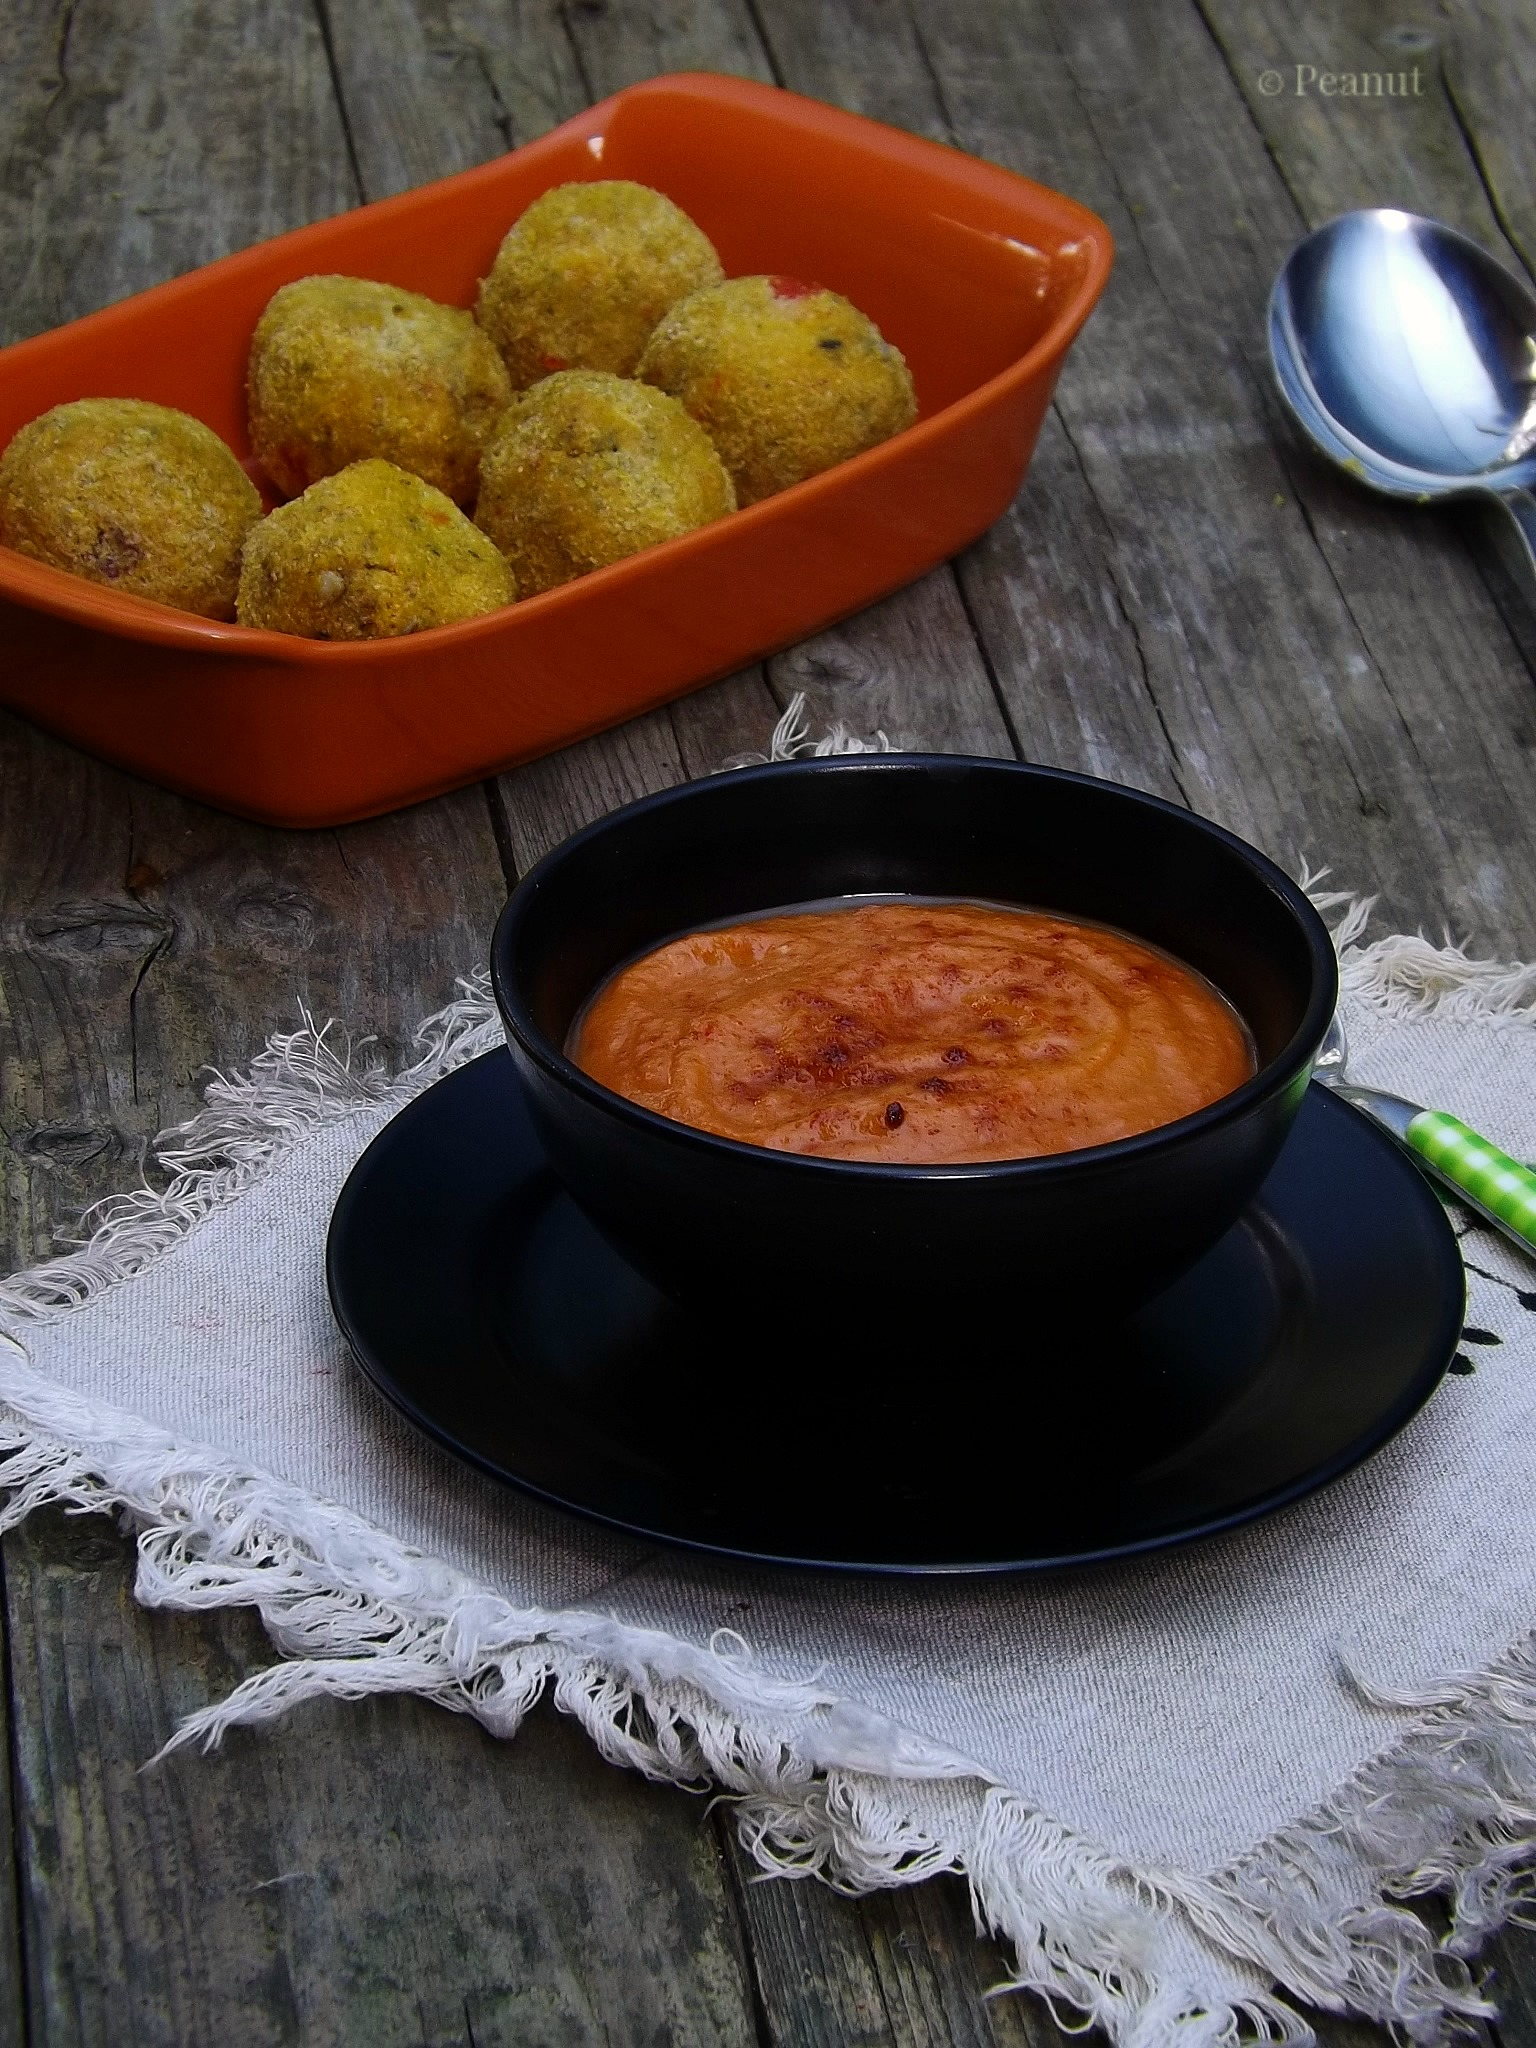 Raw carrot almond pulp balls with ketchup